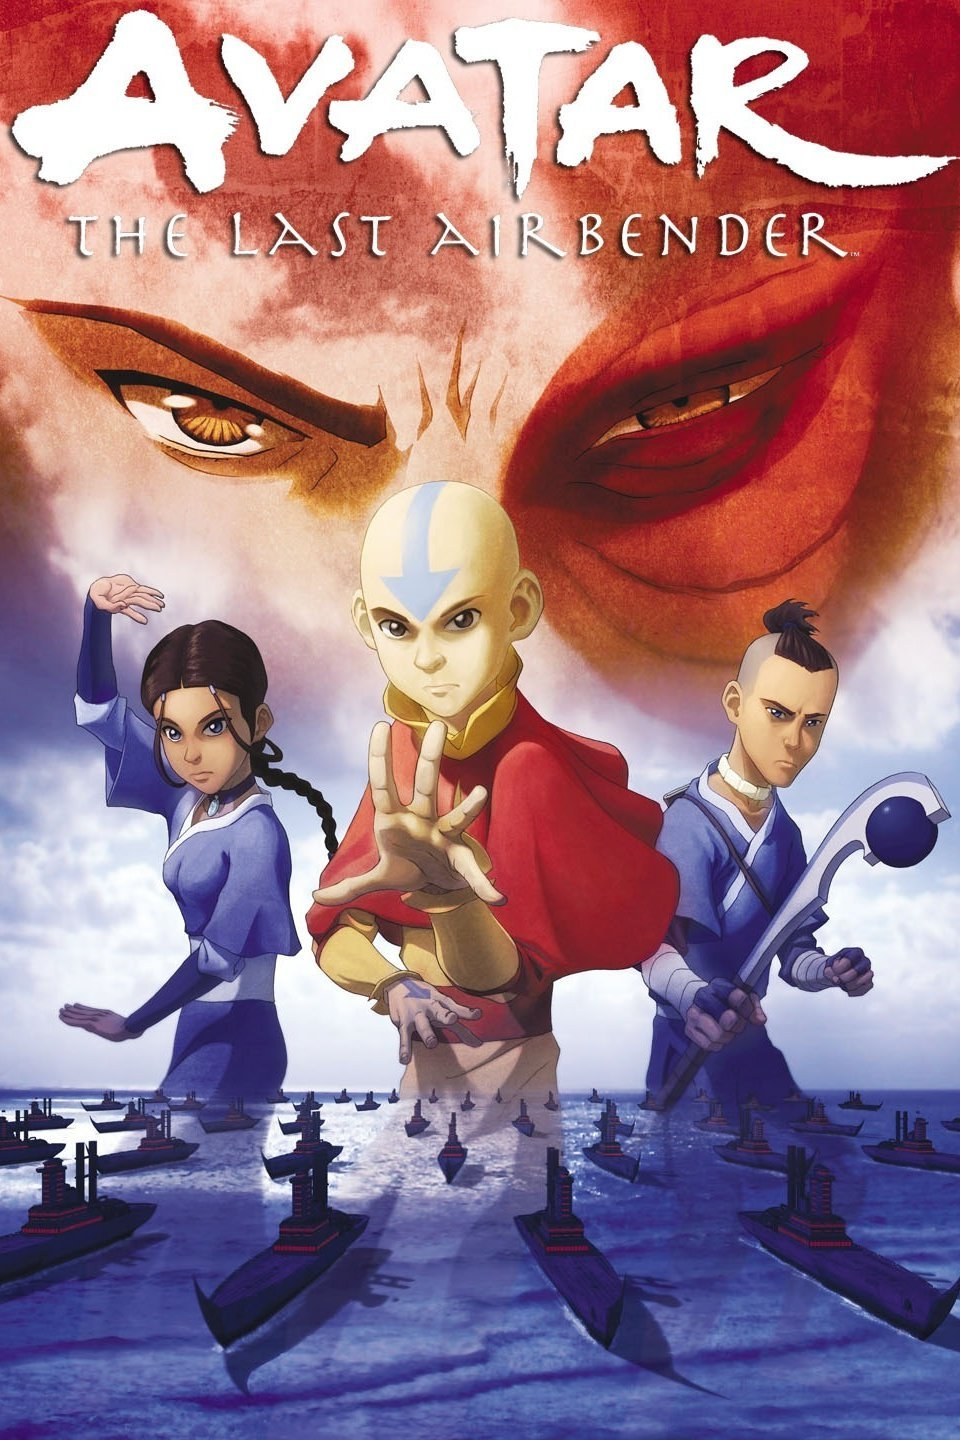 the last airbender full movie in hindi dubbed download